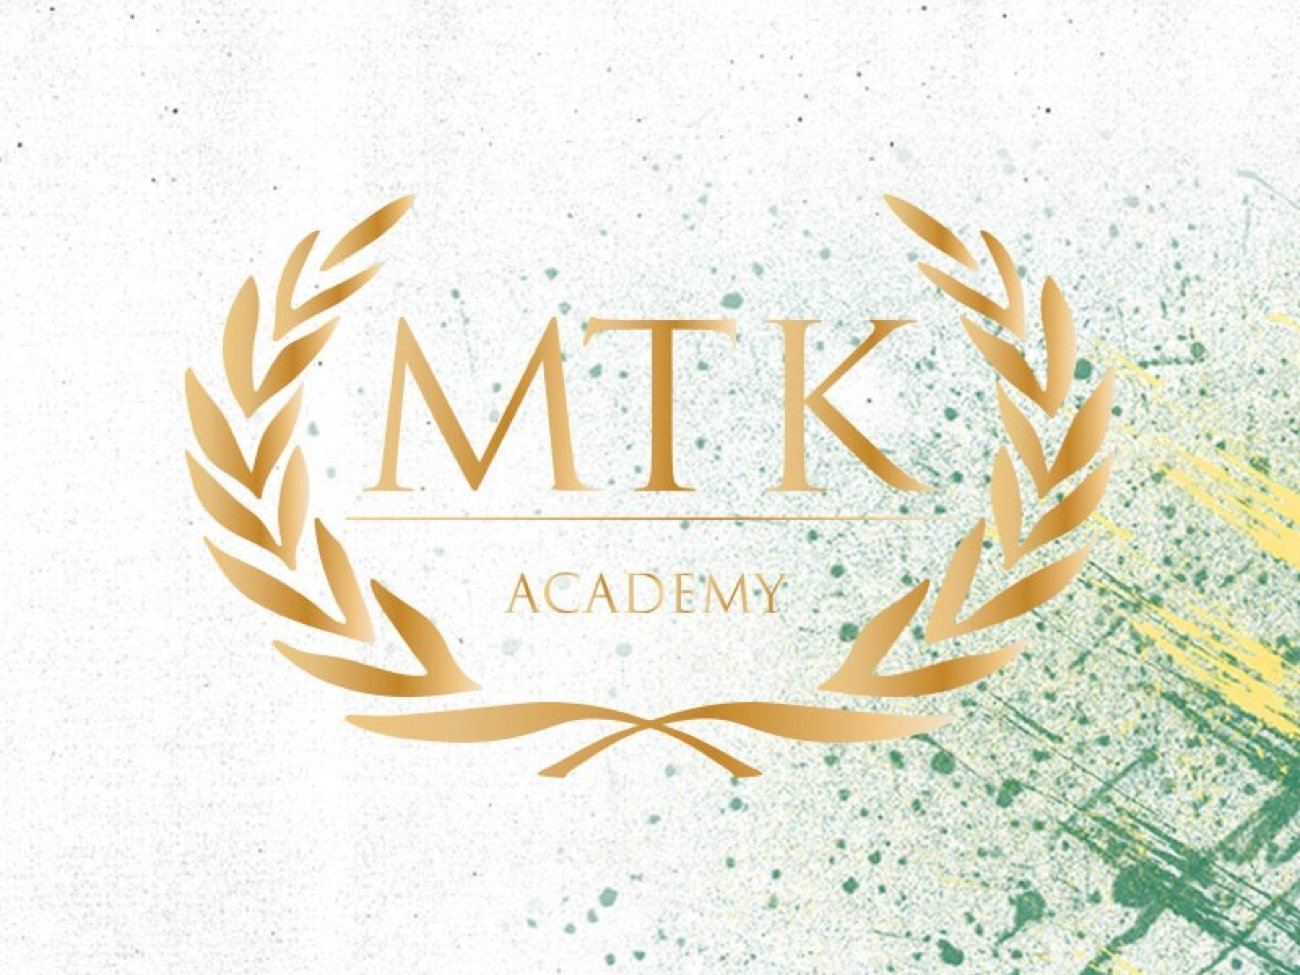 George Groves - Former world champion George Groves has expressed his enthusiasm over the MTK Academy project.